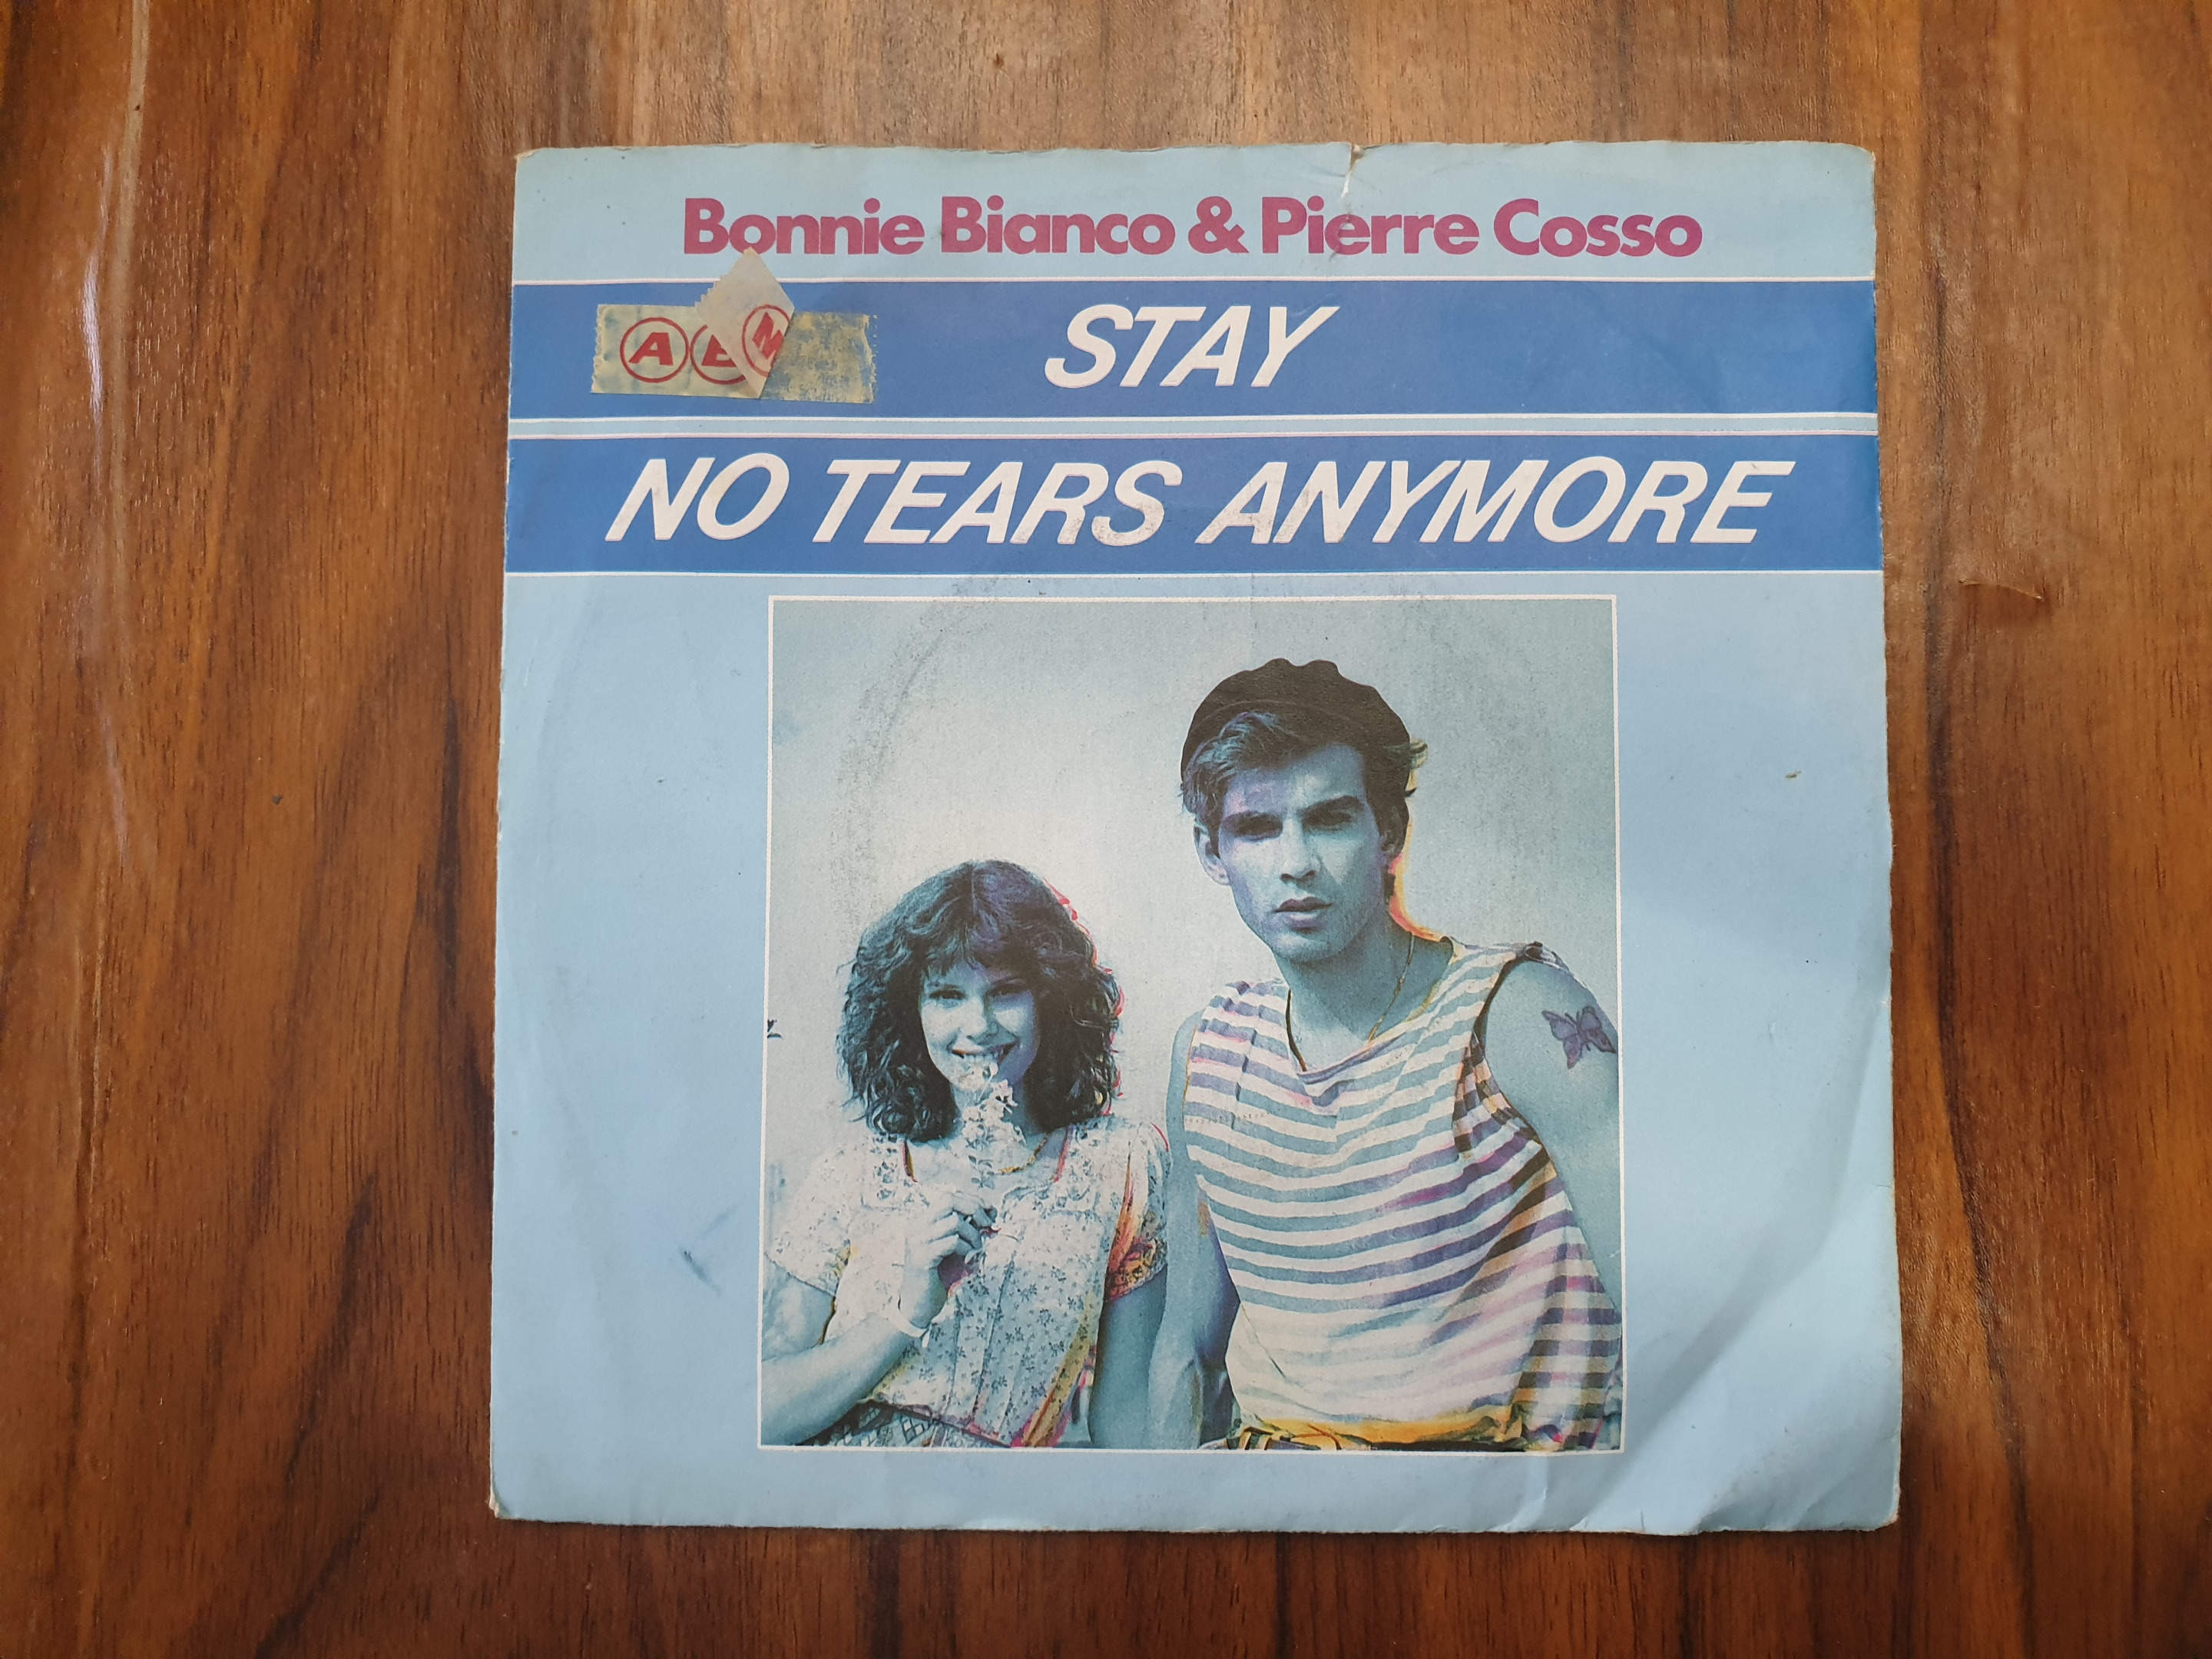 Stay / No Tears Anymore